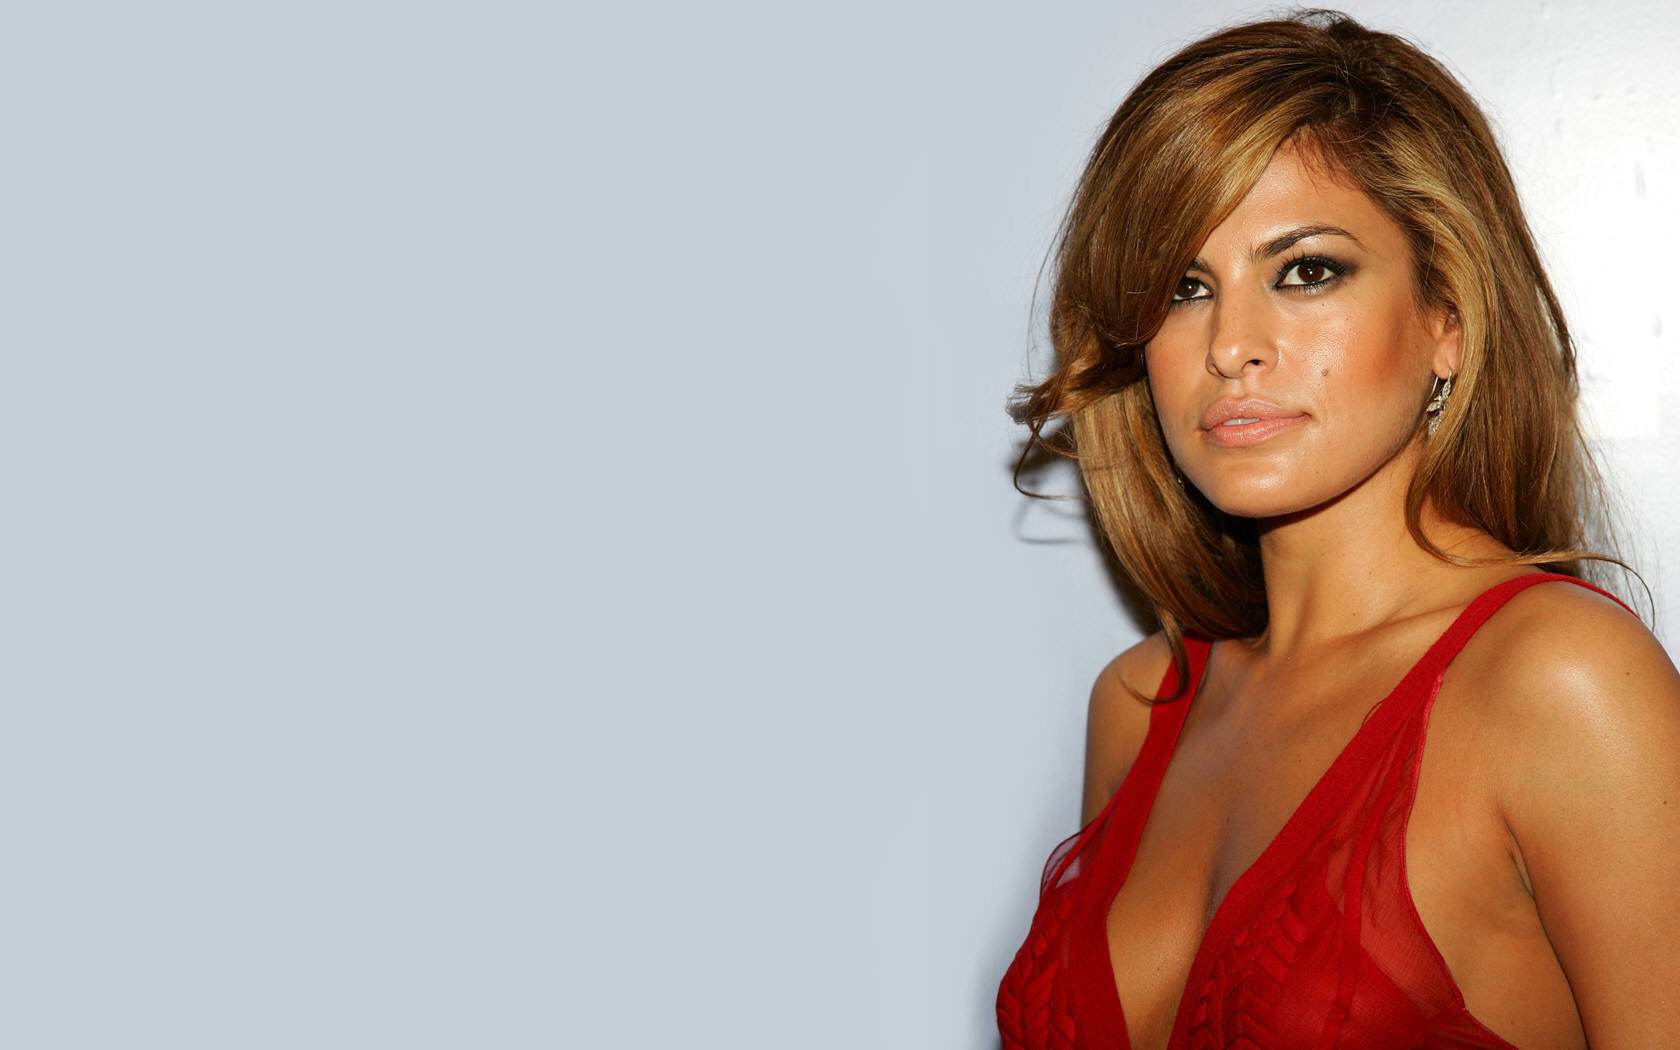 Download hd 1680x1050 Eva Mendes desktop background ID:467281 for free